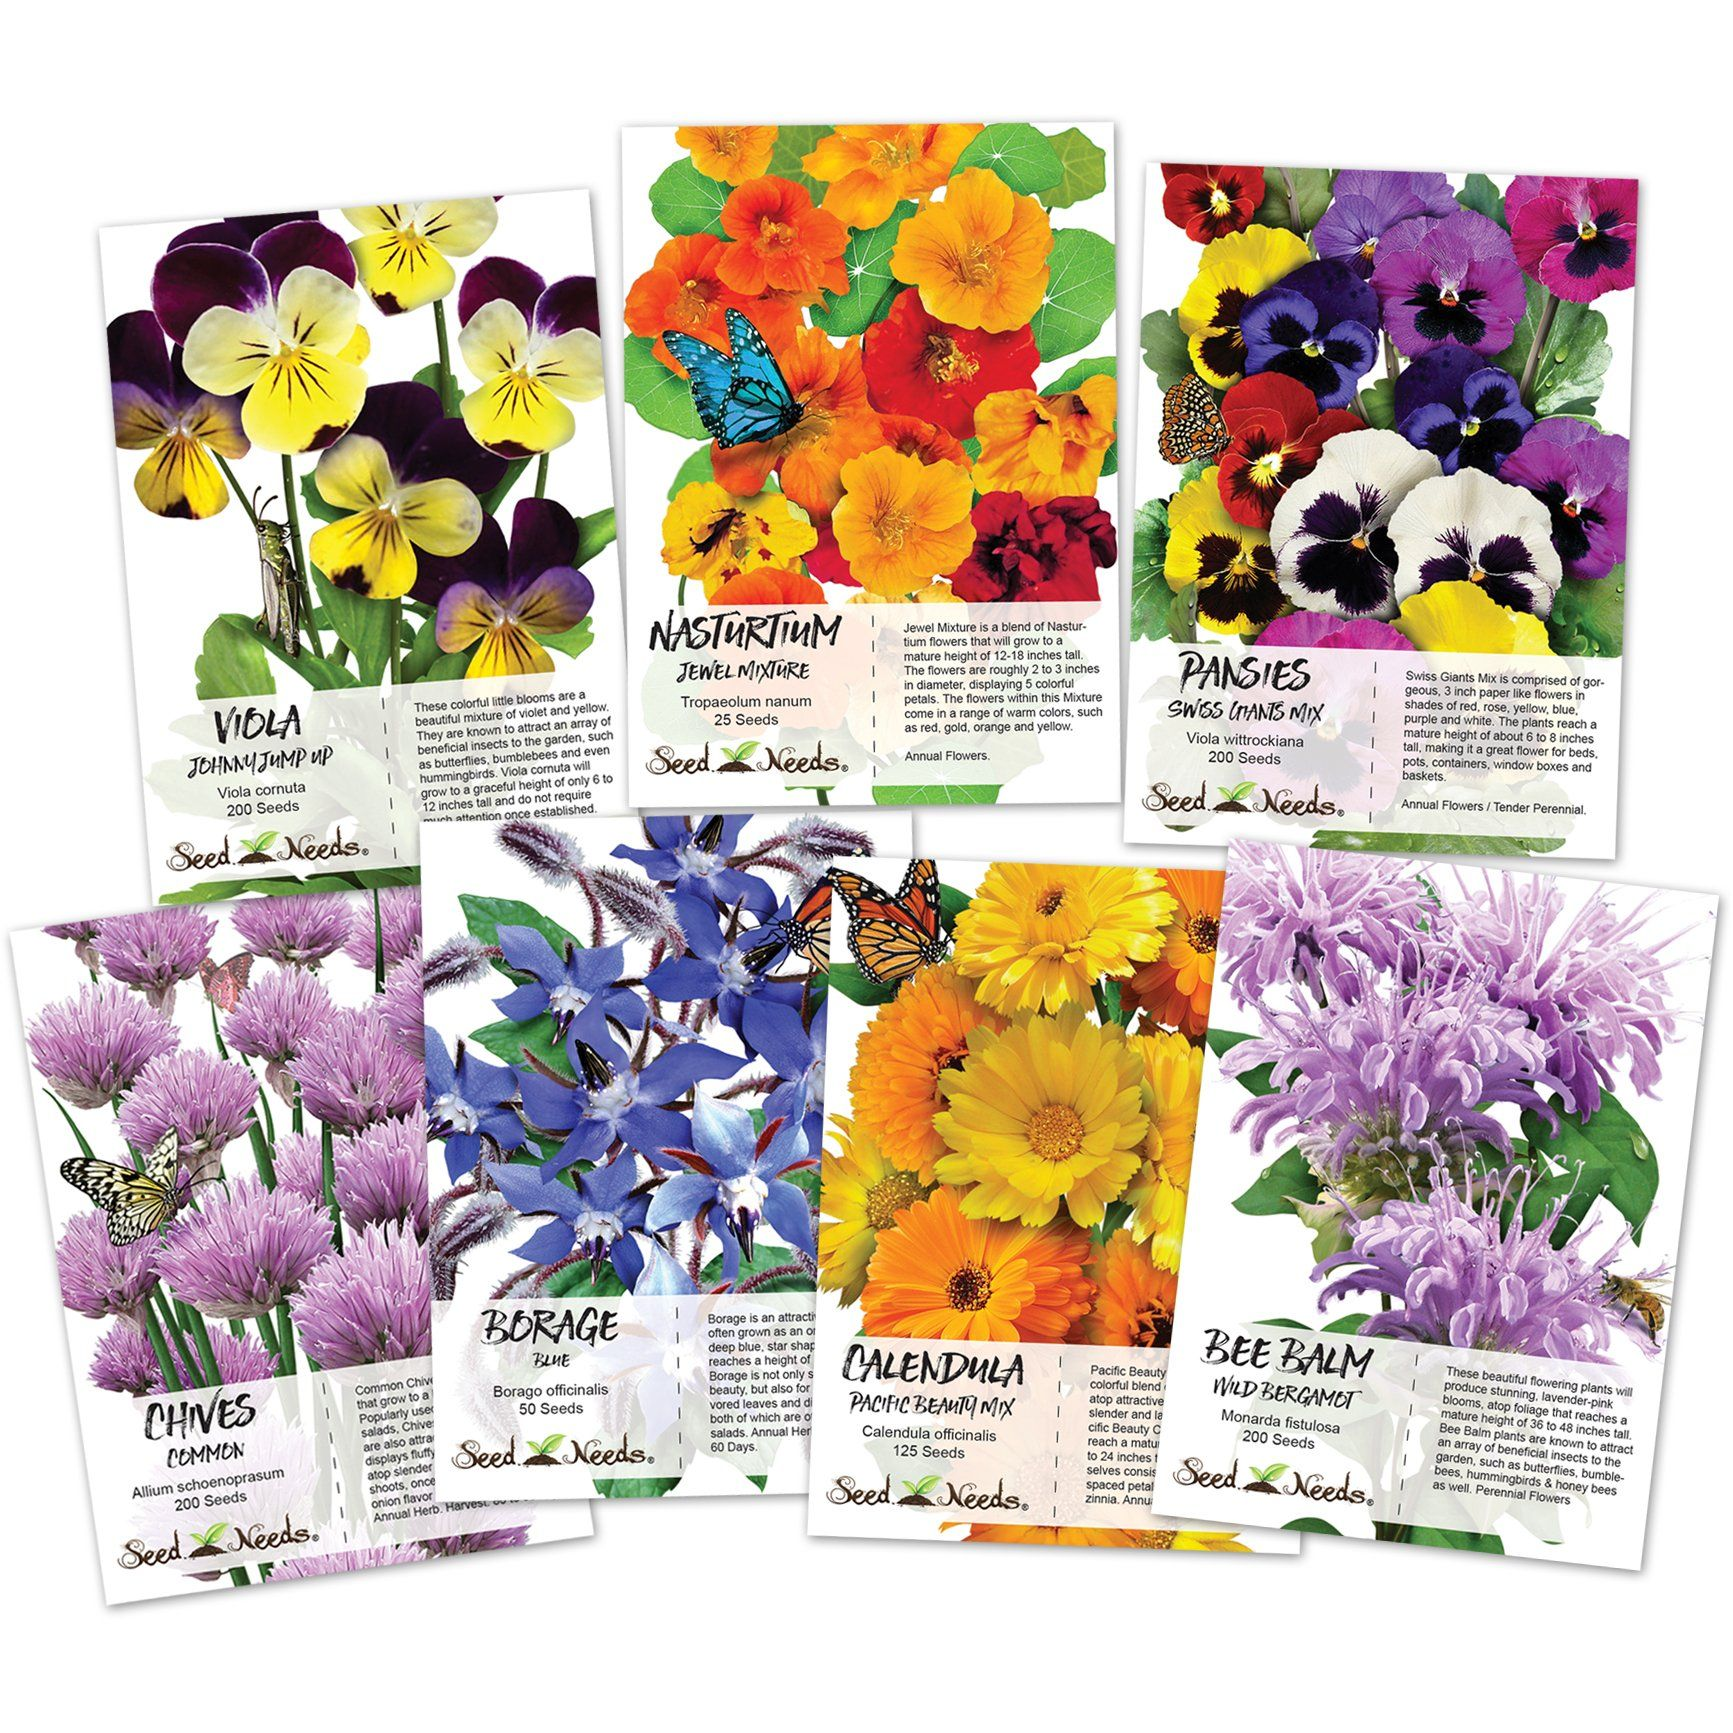 Edible wildflower seed collection wildflower seeds